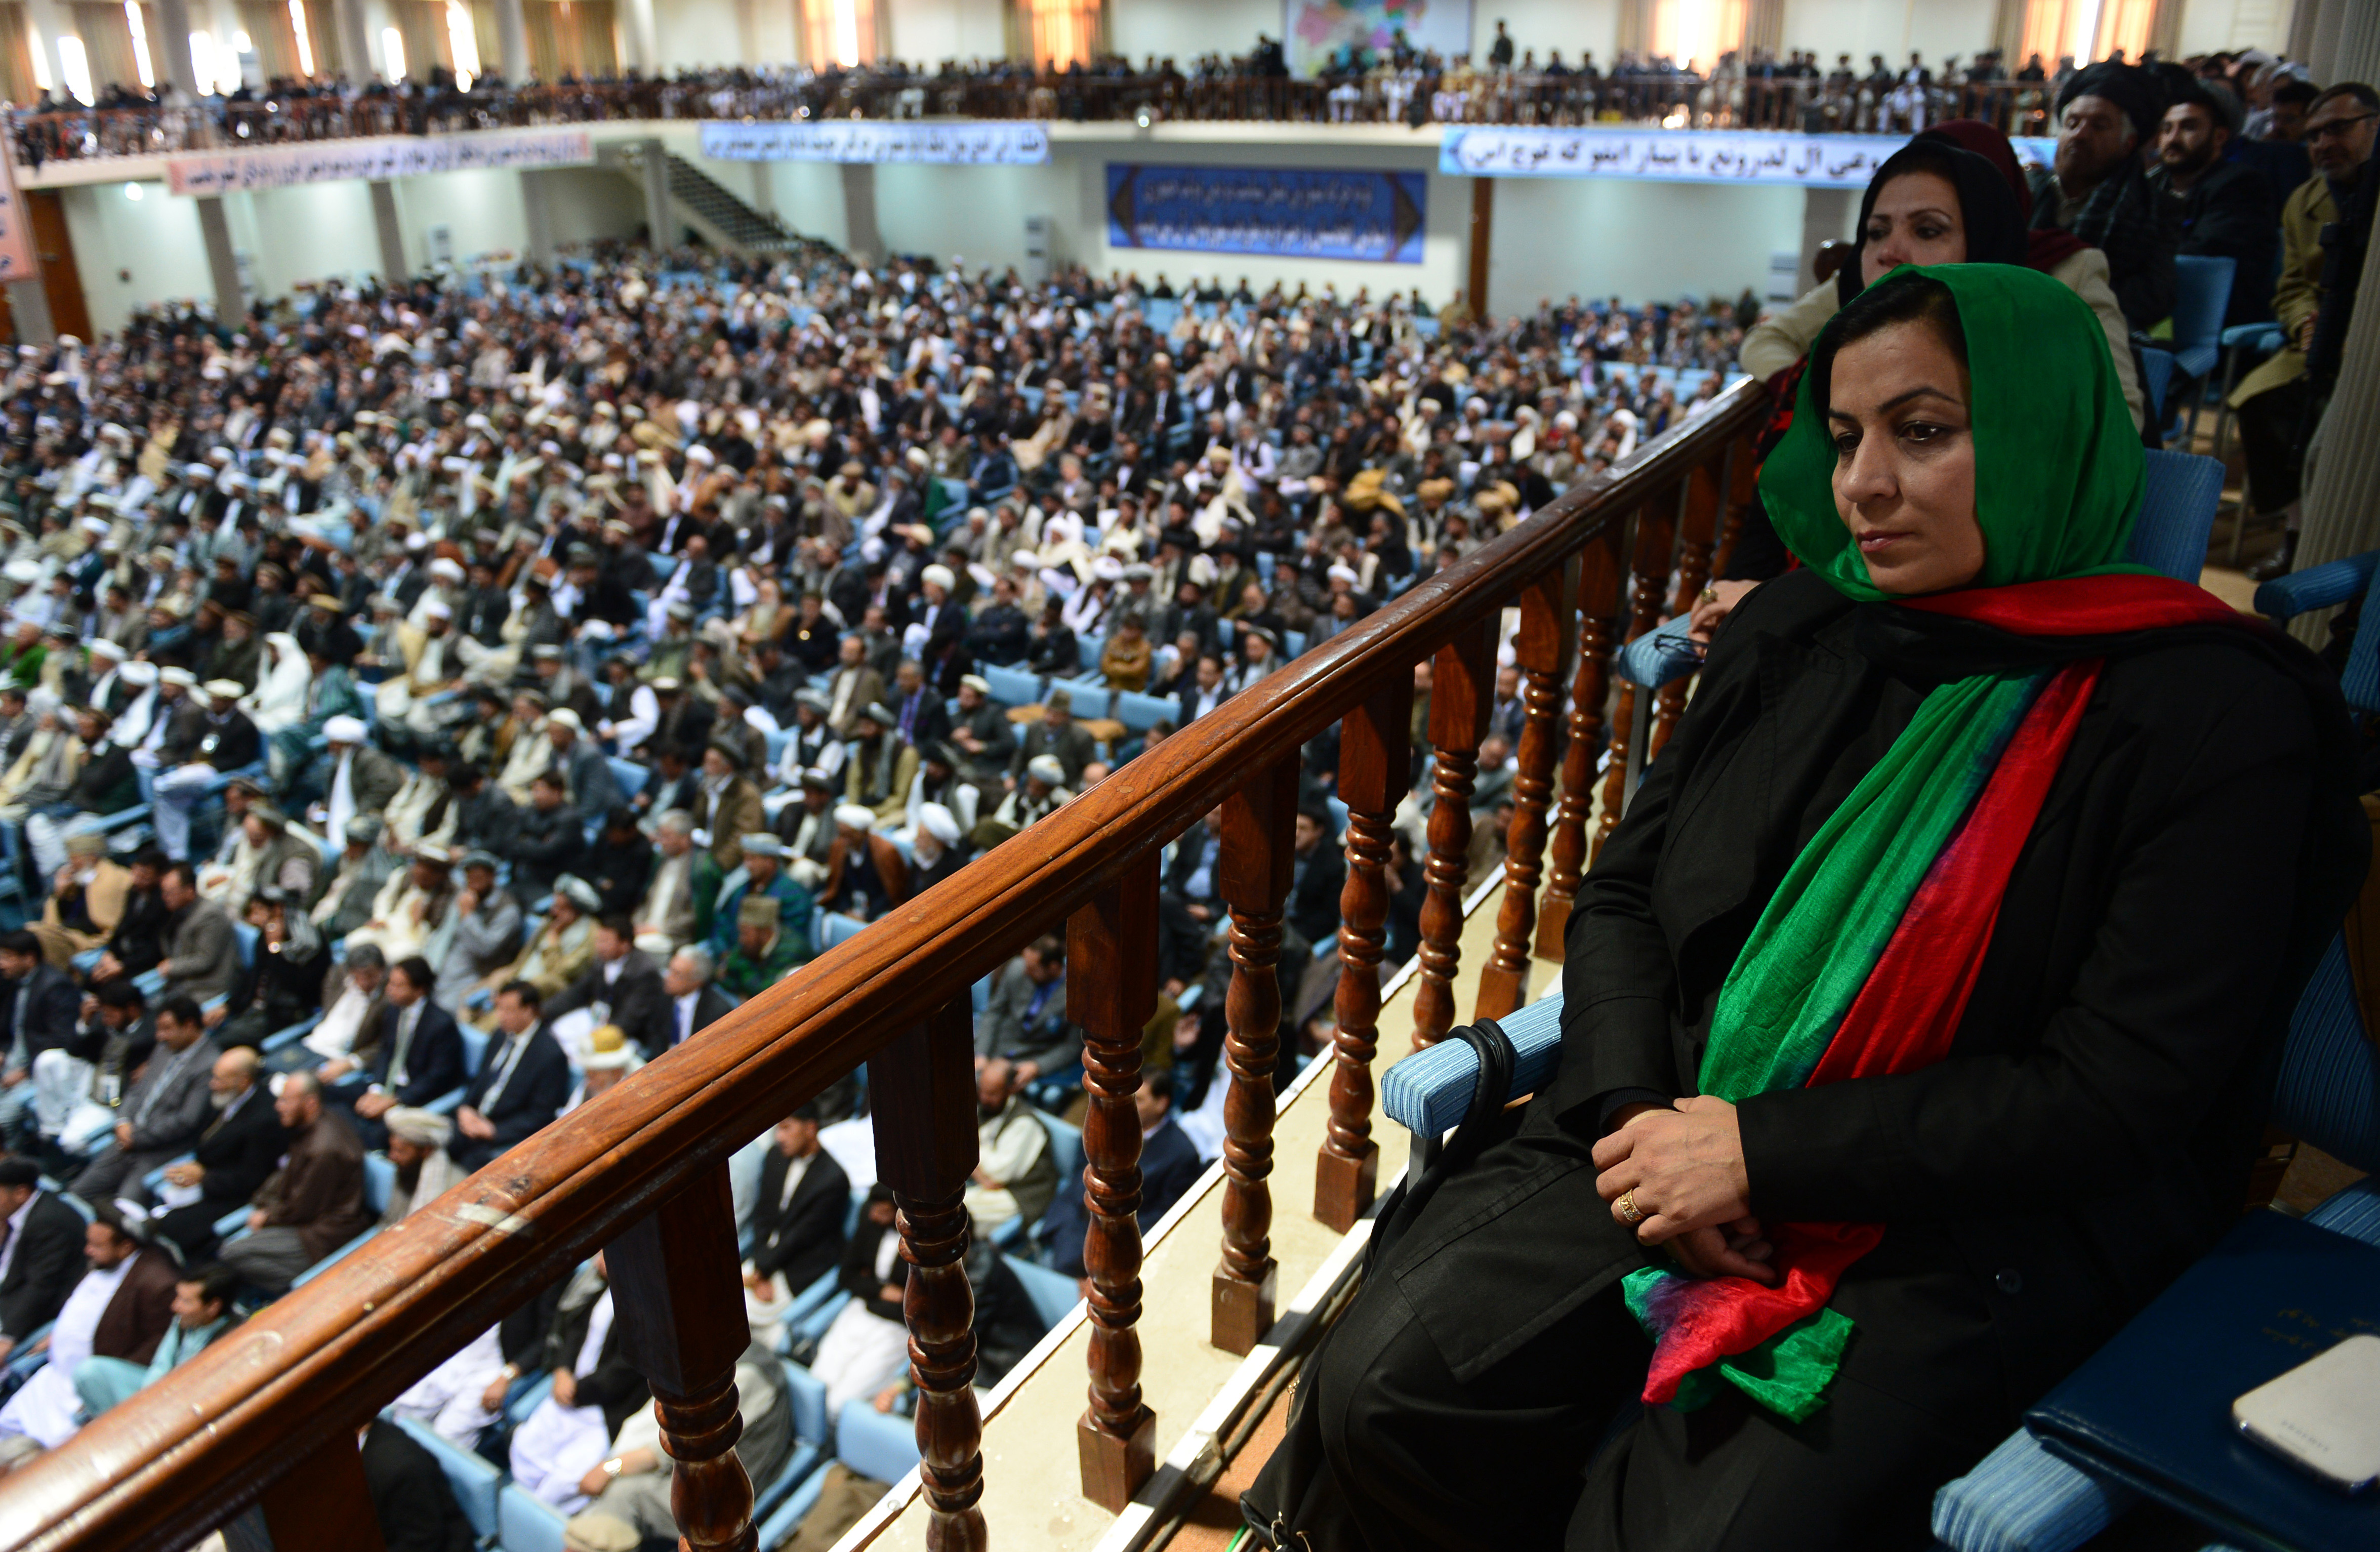 Taliban refusal to attend Loya Jirga signals goal of violence, Afghans say